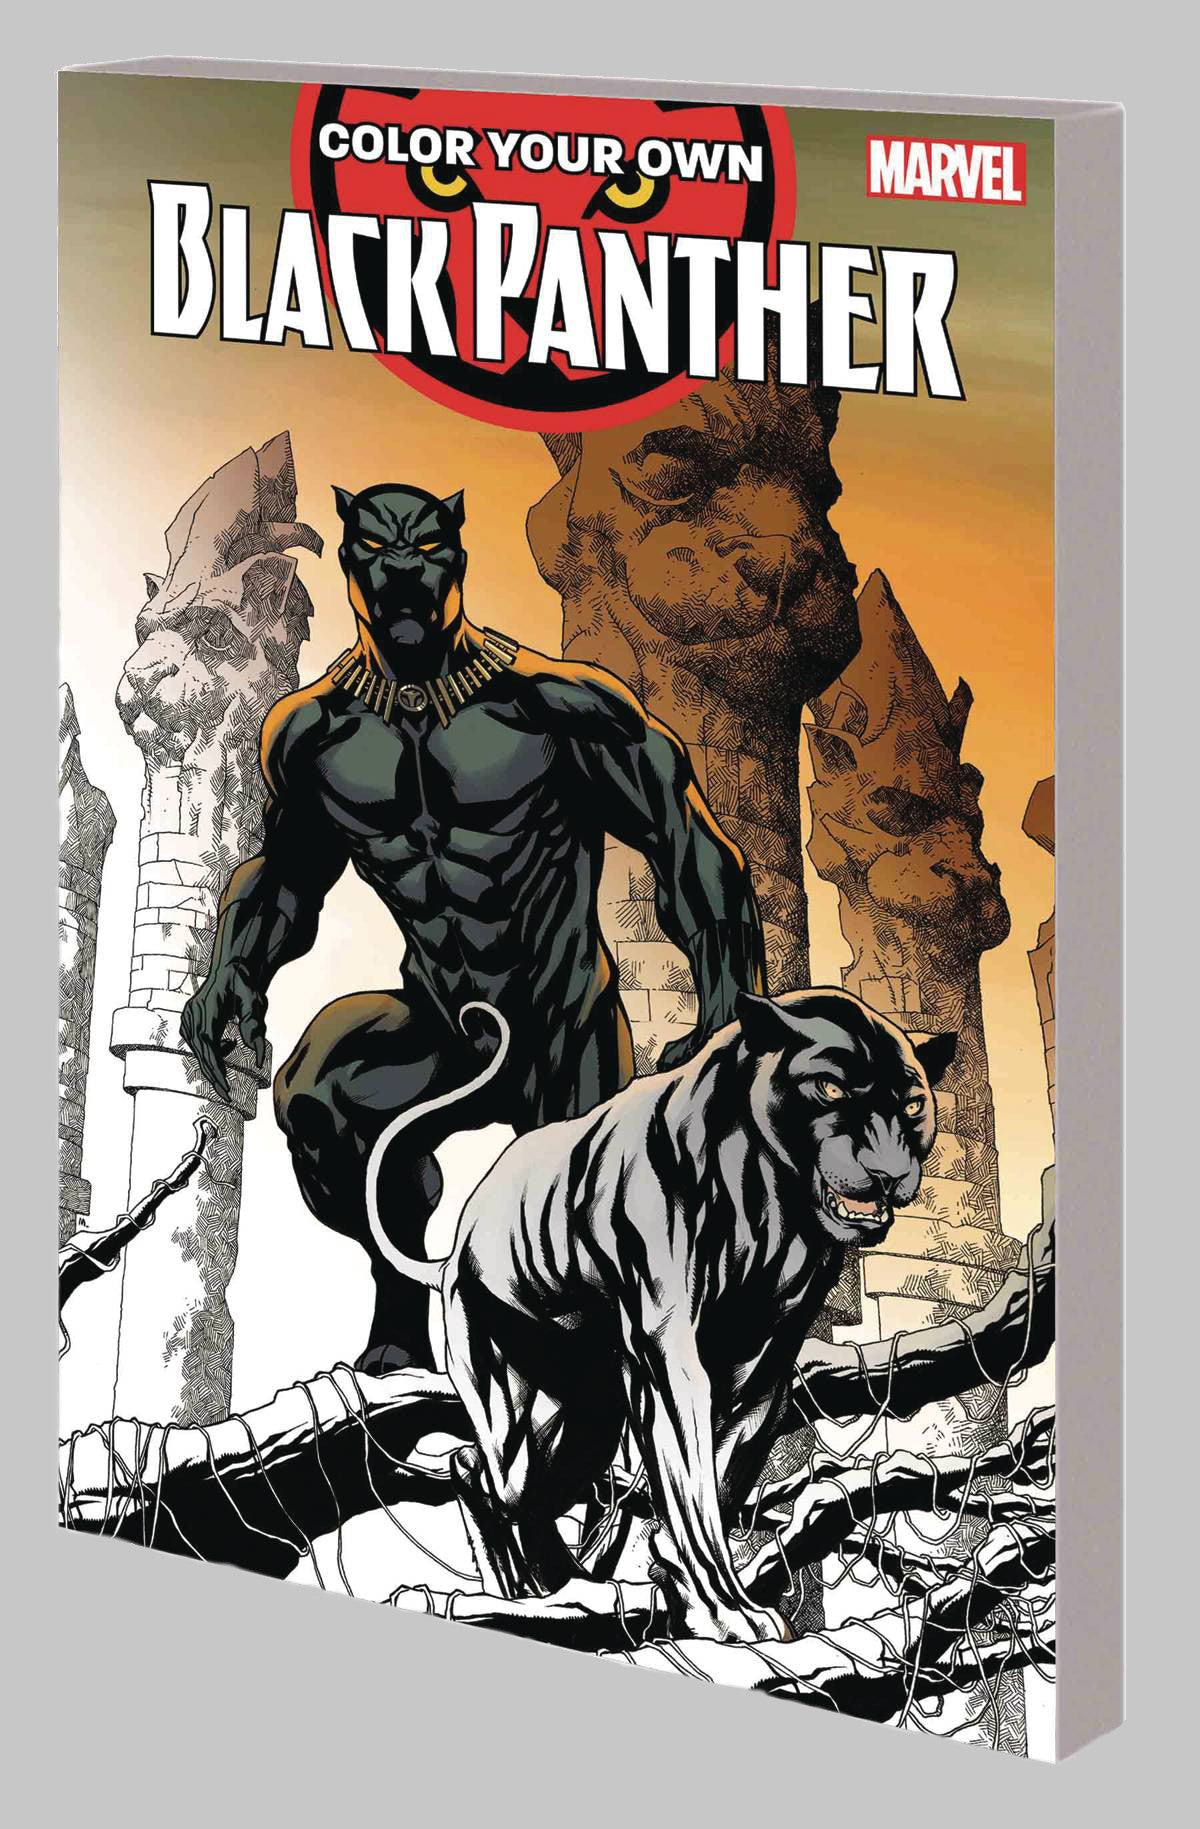 Colour Your Own Black Panther